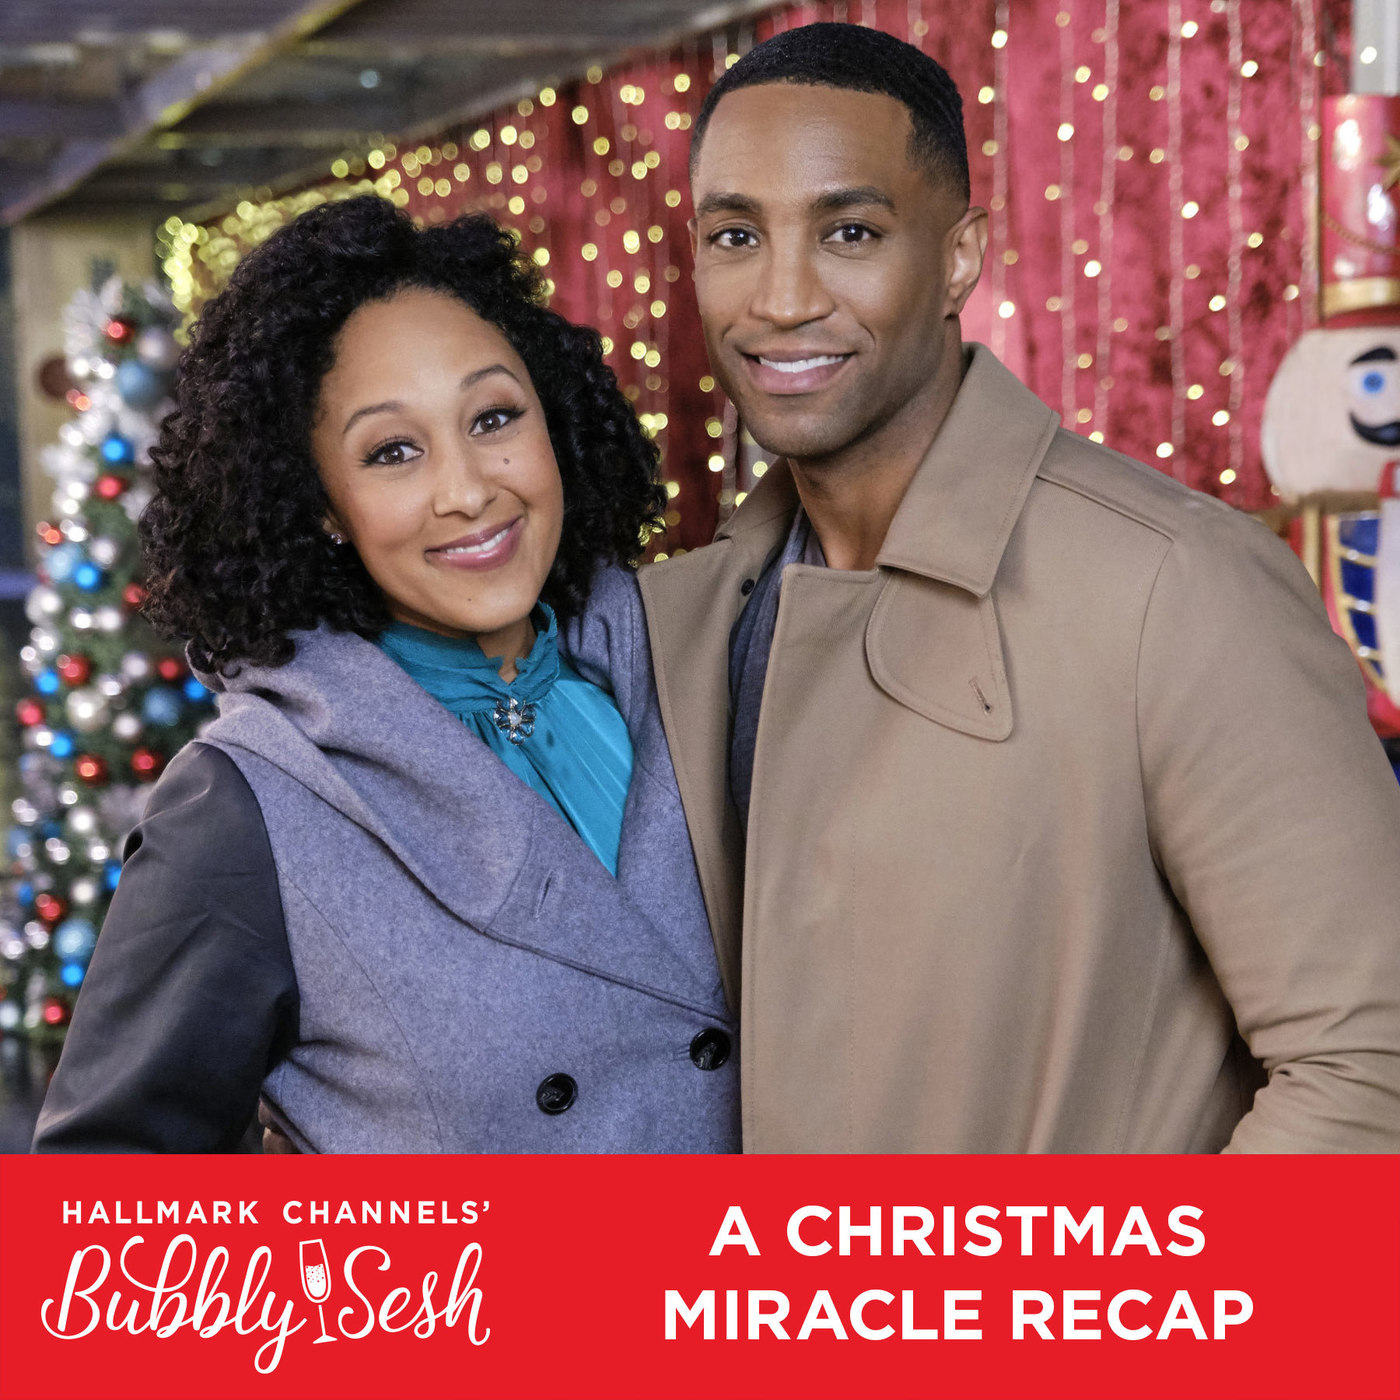 A Christmas Miracle Recap